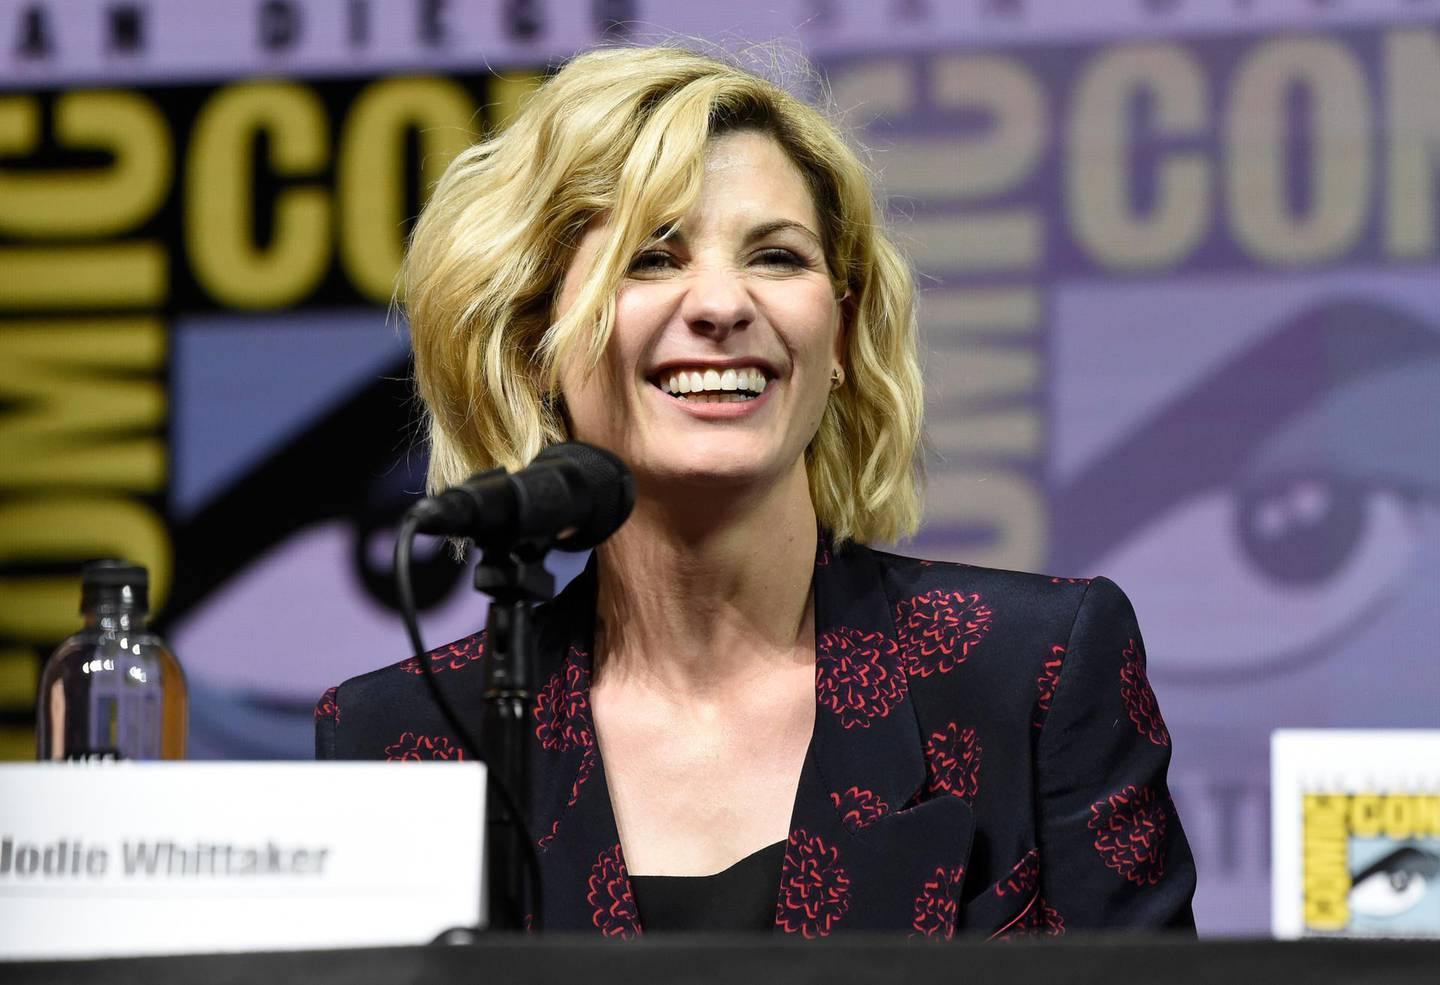 Jodie Whittaker attends the EW: Women who Kick Ass panel on day three of Comic-Con International on Saturday, July 21, 2018, in San Diego. (Photo by Chris Pizzello/Invision/AP)